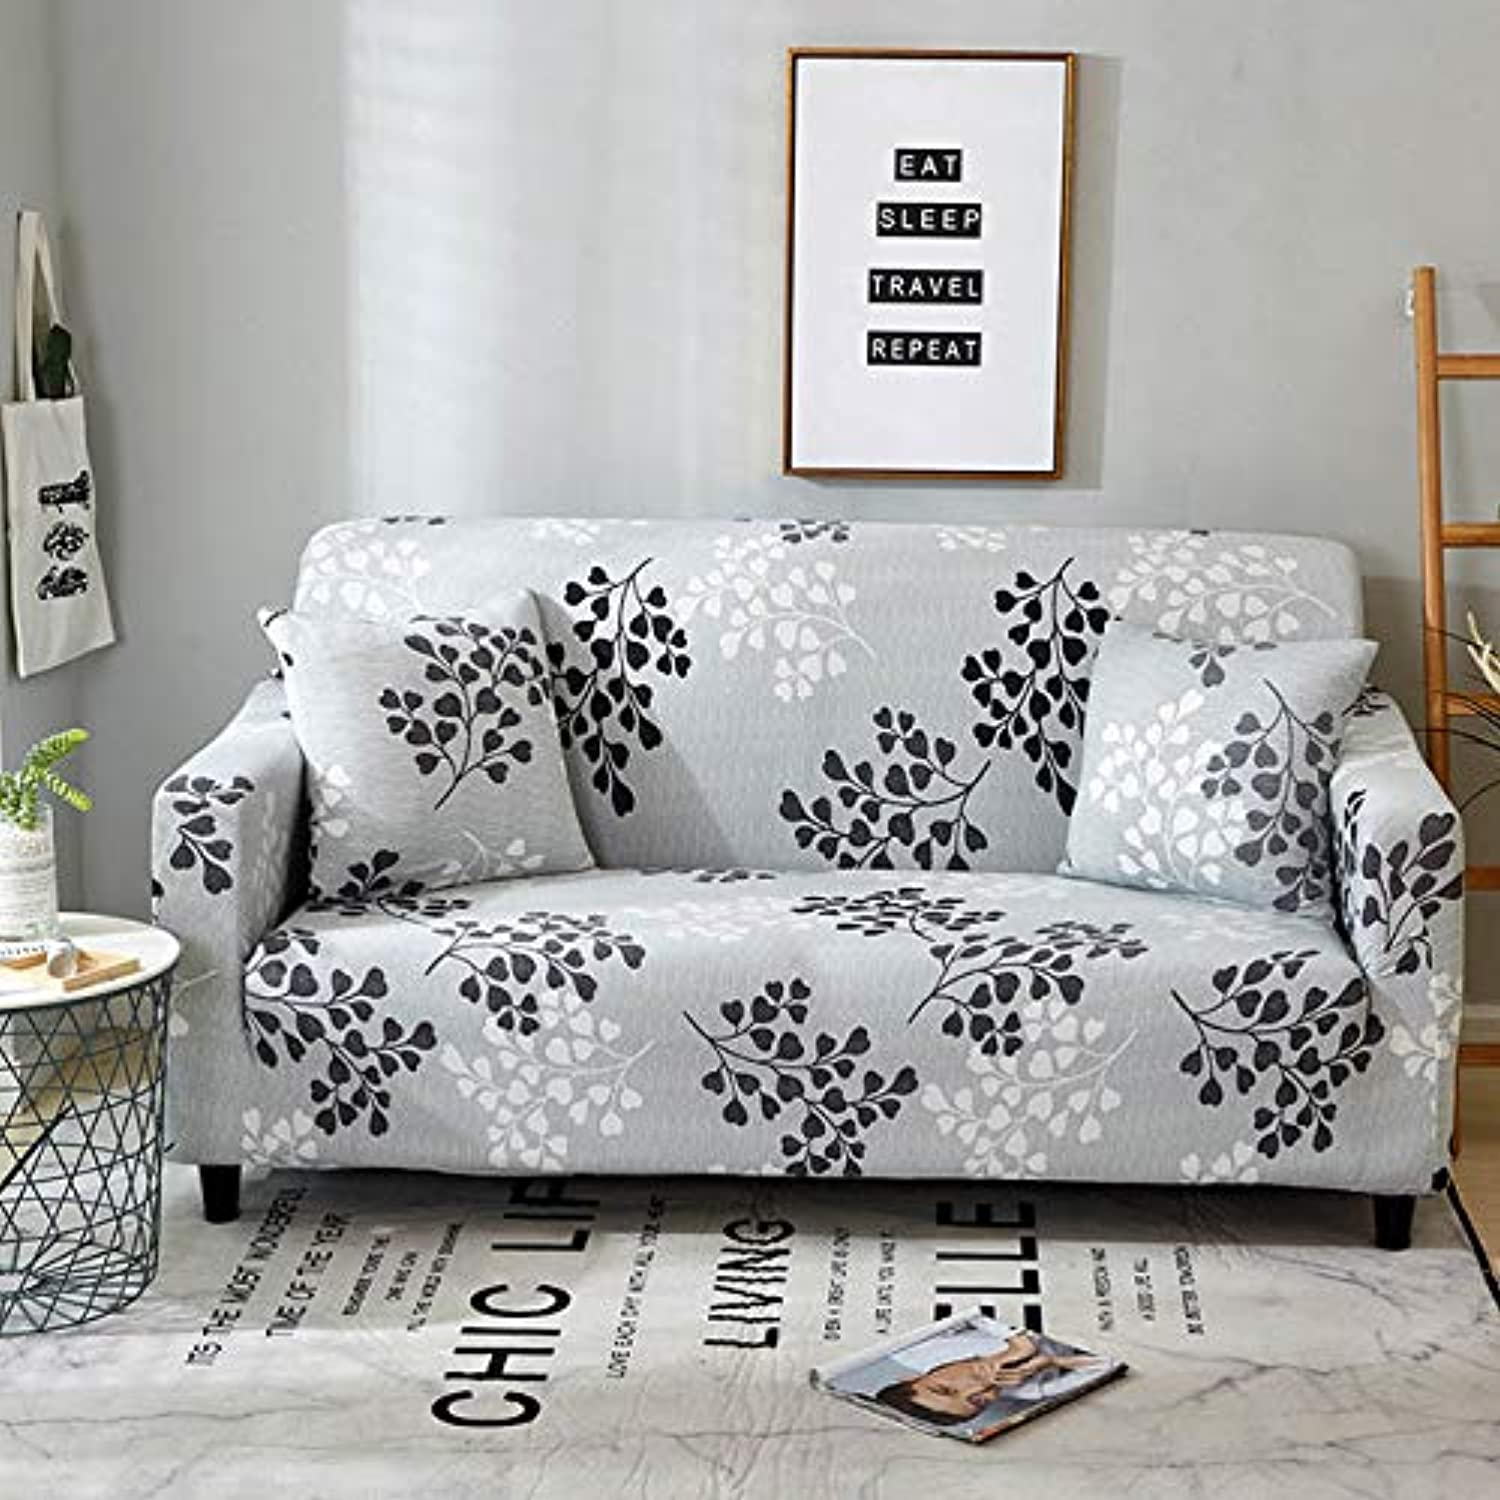 AntiDirty Sofa Cover AllInclusive SlipResistant Tight Wrap Elastic Couch Cover Furniture Covers capa de Sofa 1 2 3 4seater   color 1, 2pcs Cushion Covers